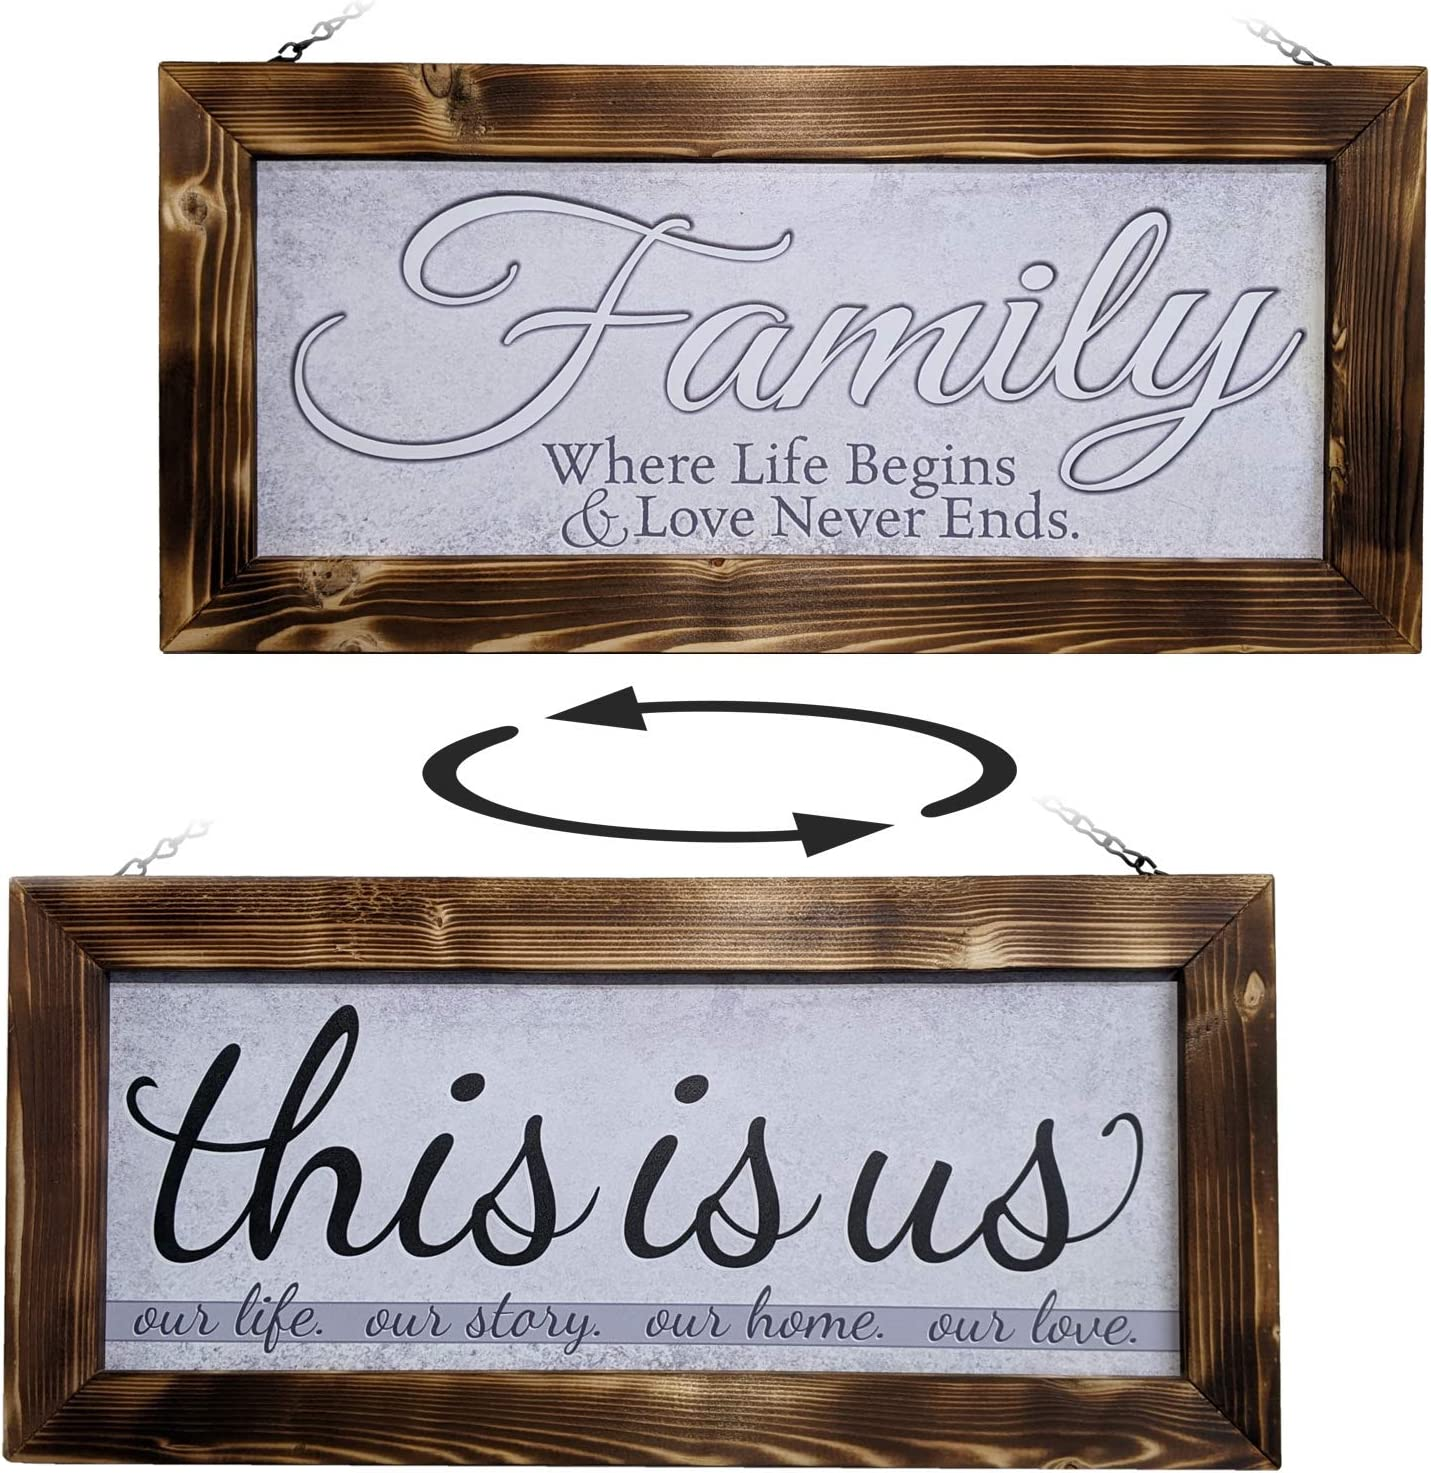 ATX CUSTOM SIGNS - Handmade Rustic Farmhouse Decor Family Sign Double Sided - Soft Grays - This is us and Family Where Life Begins & Love Never Ends